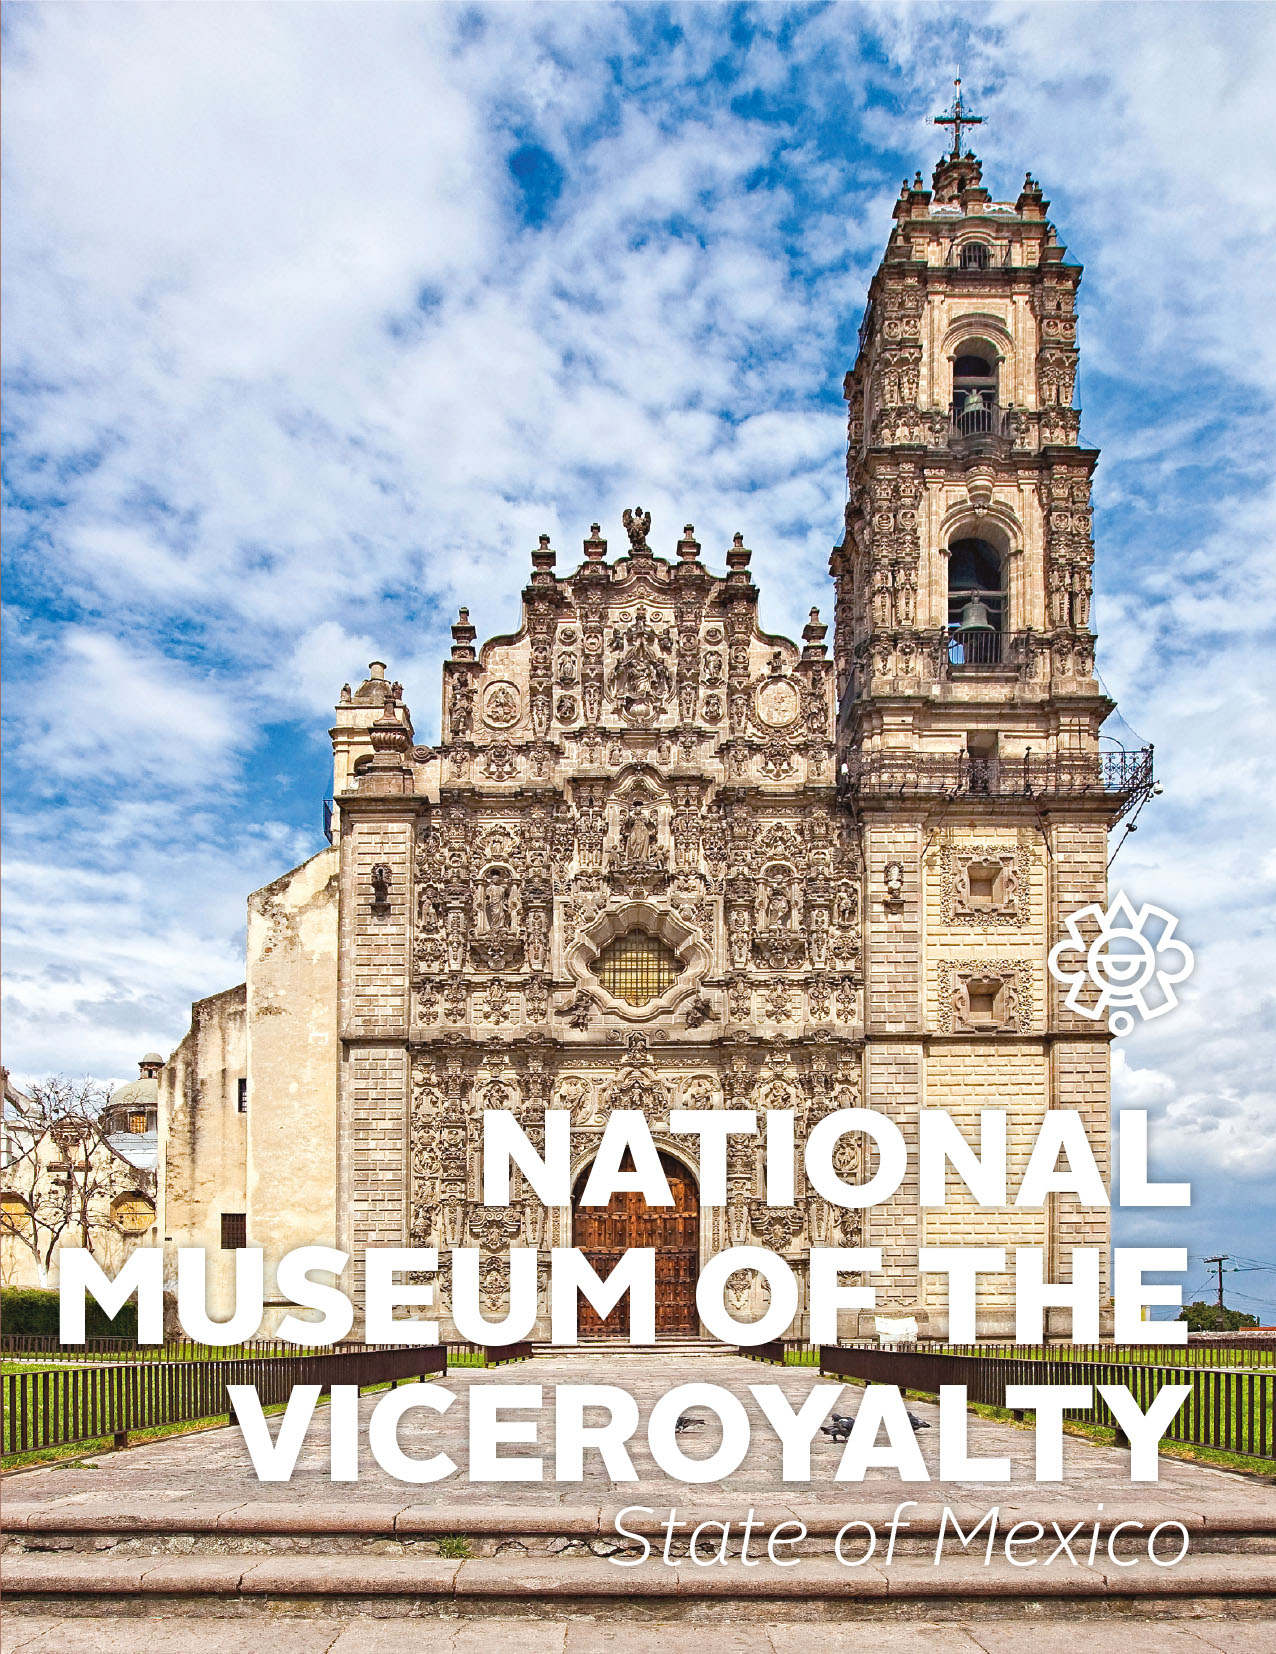 National Museum of the Viceroyalty